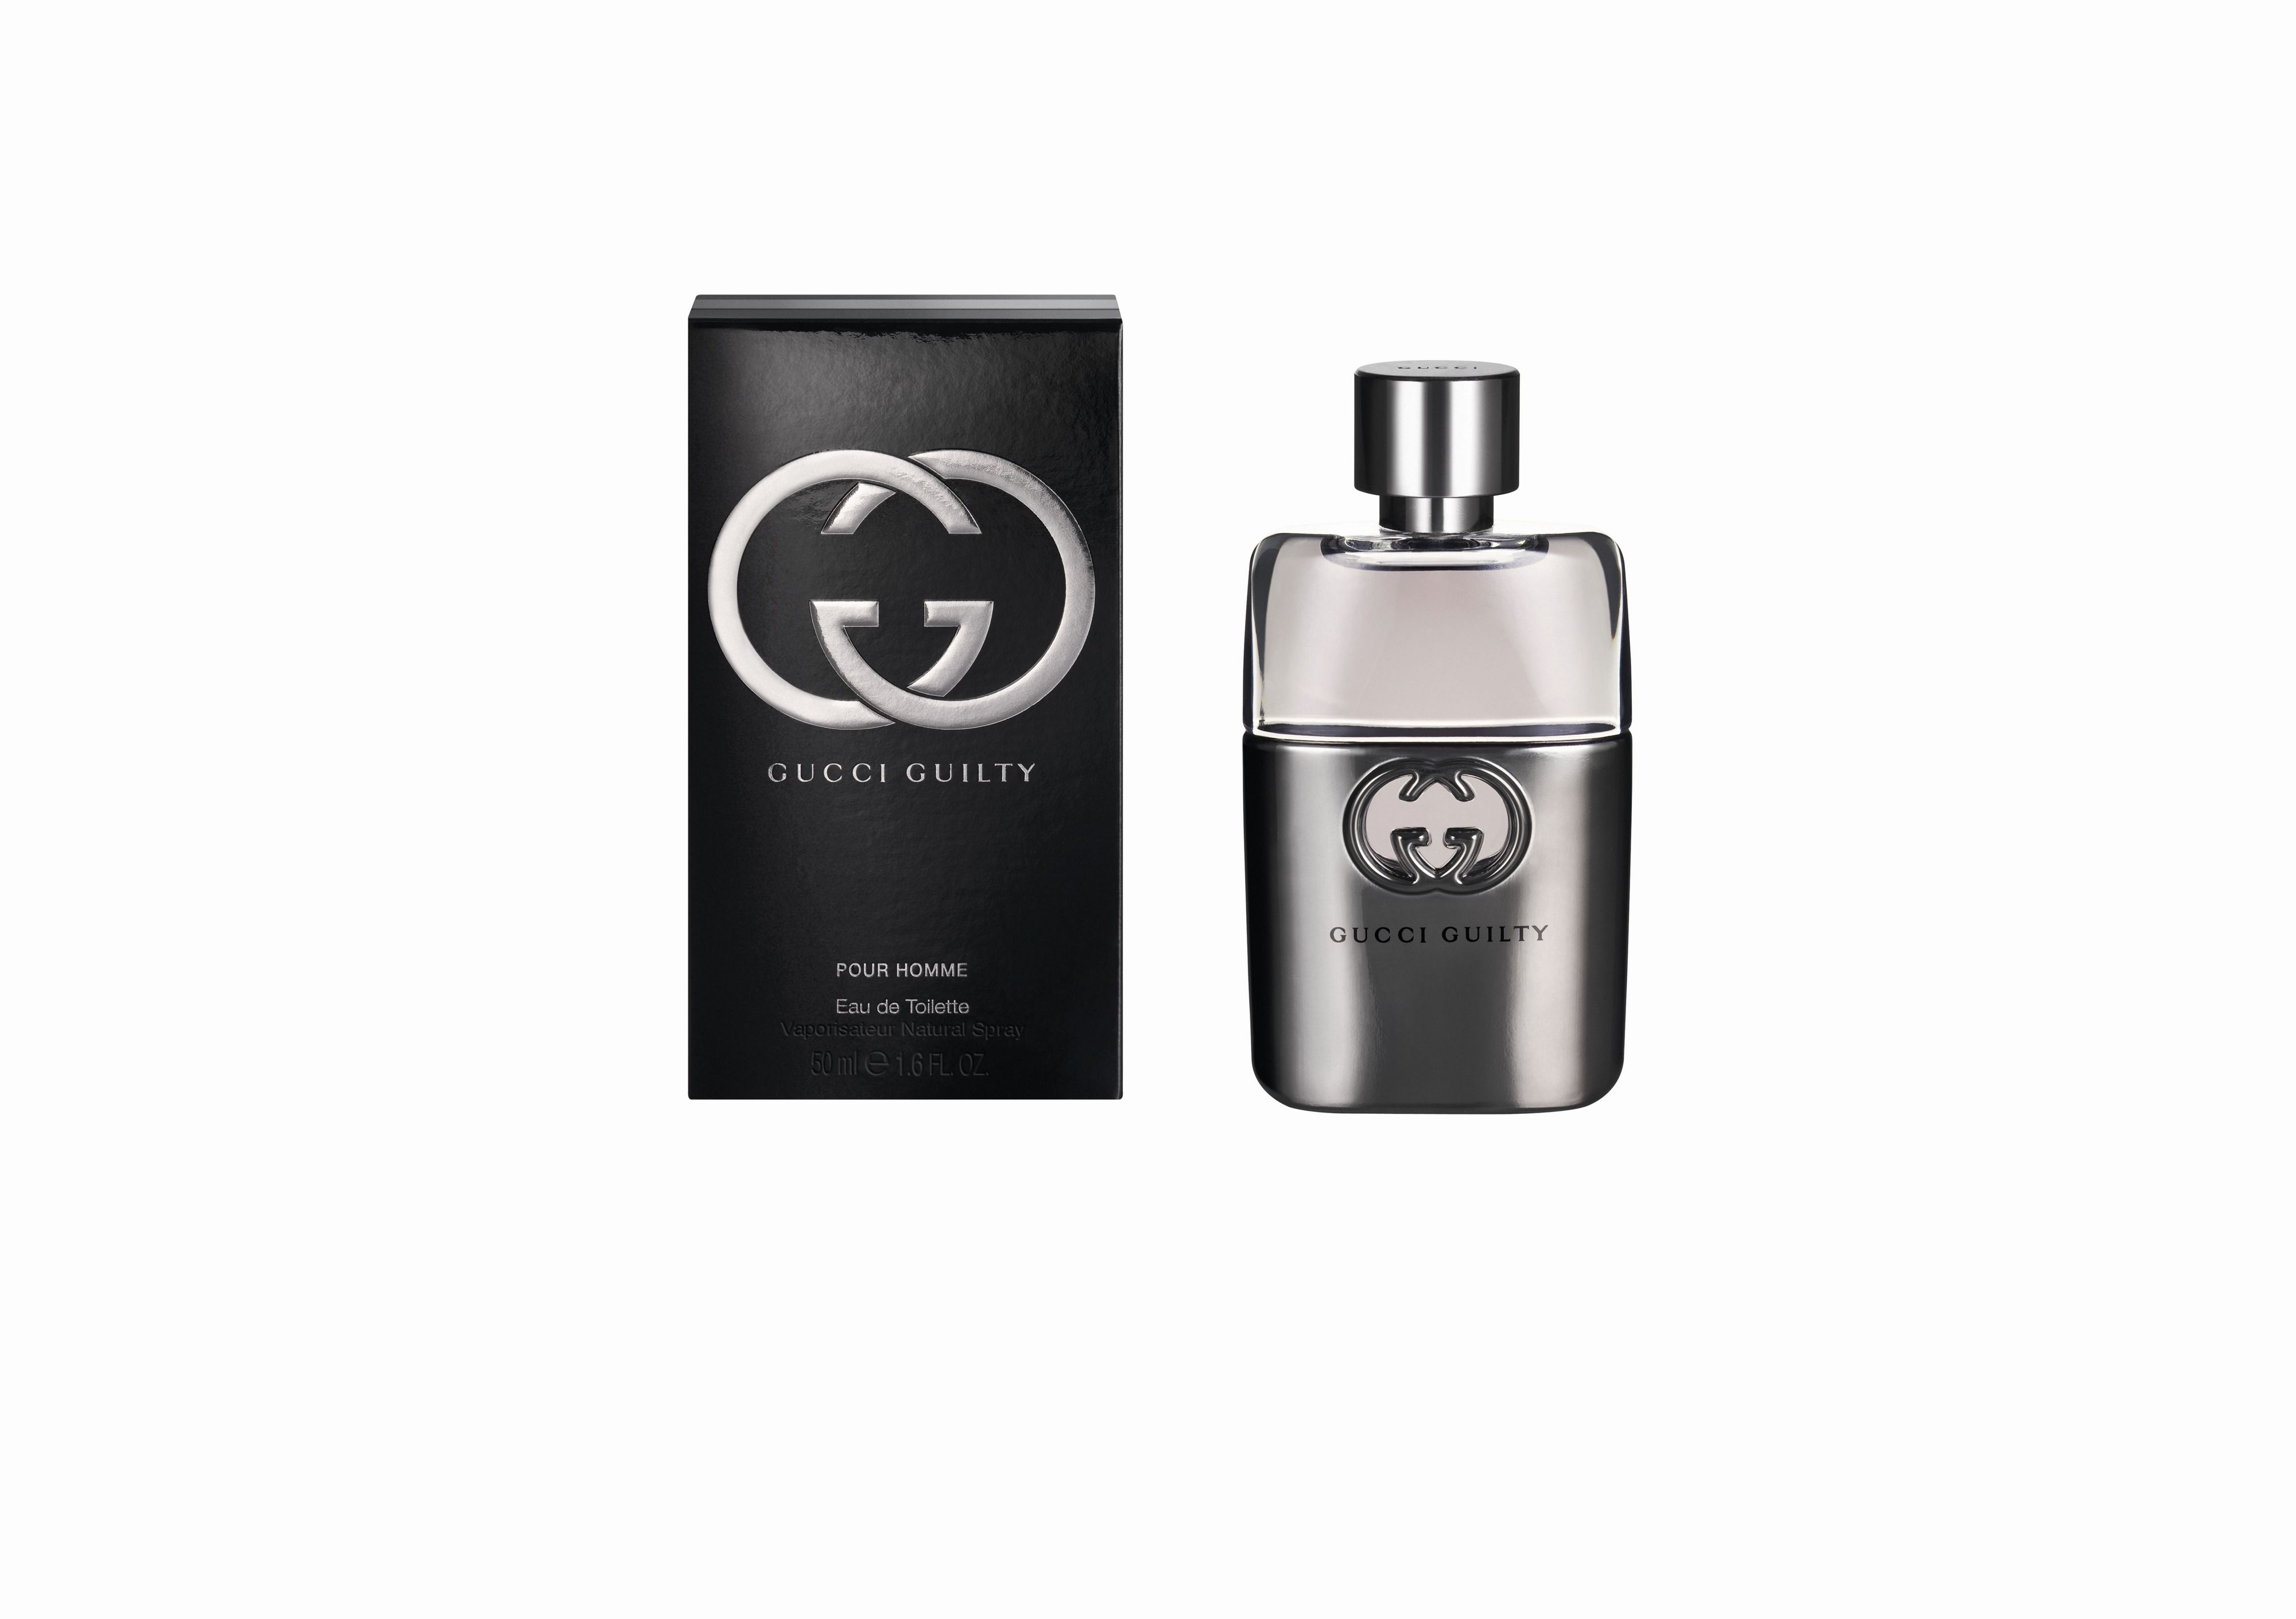 Gucci Guilty PH EDT 50ml